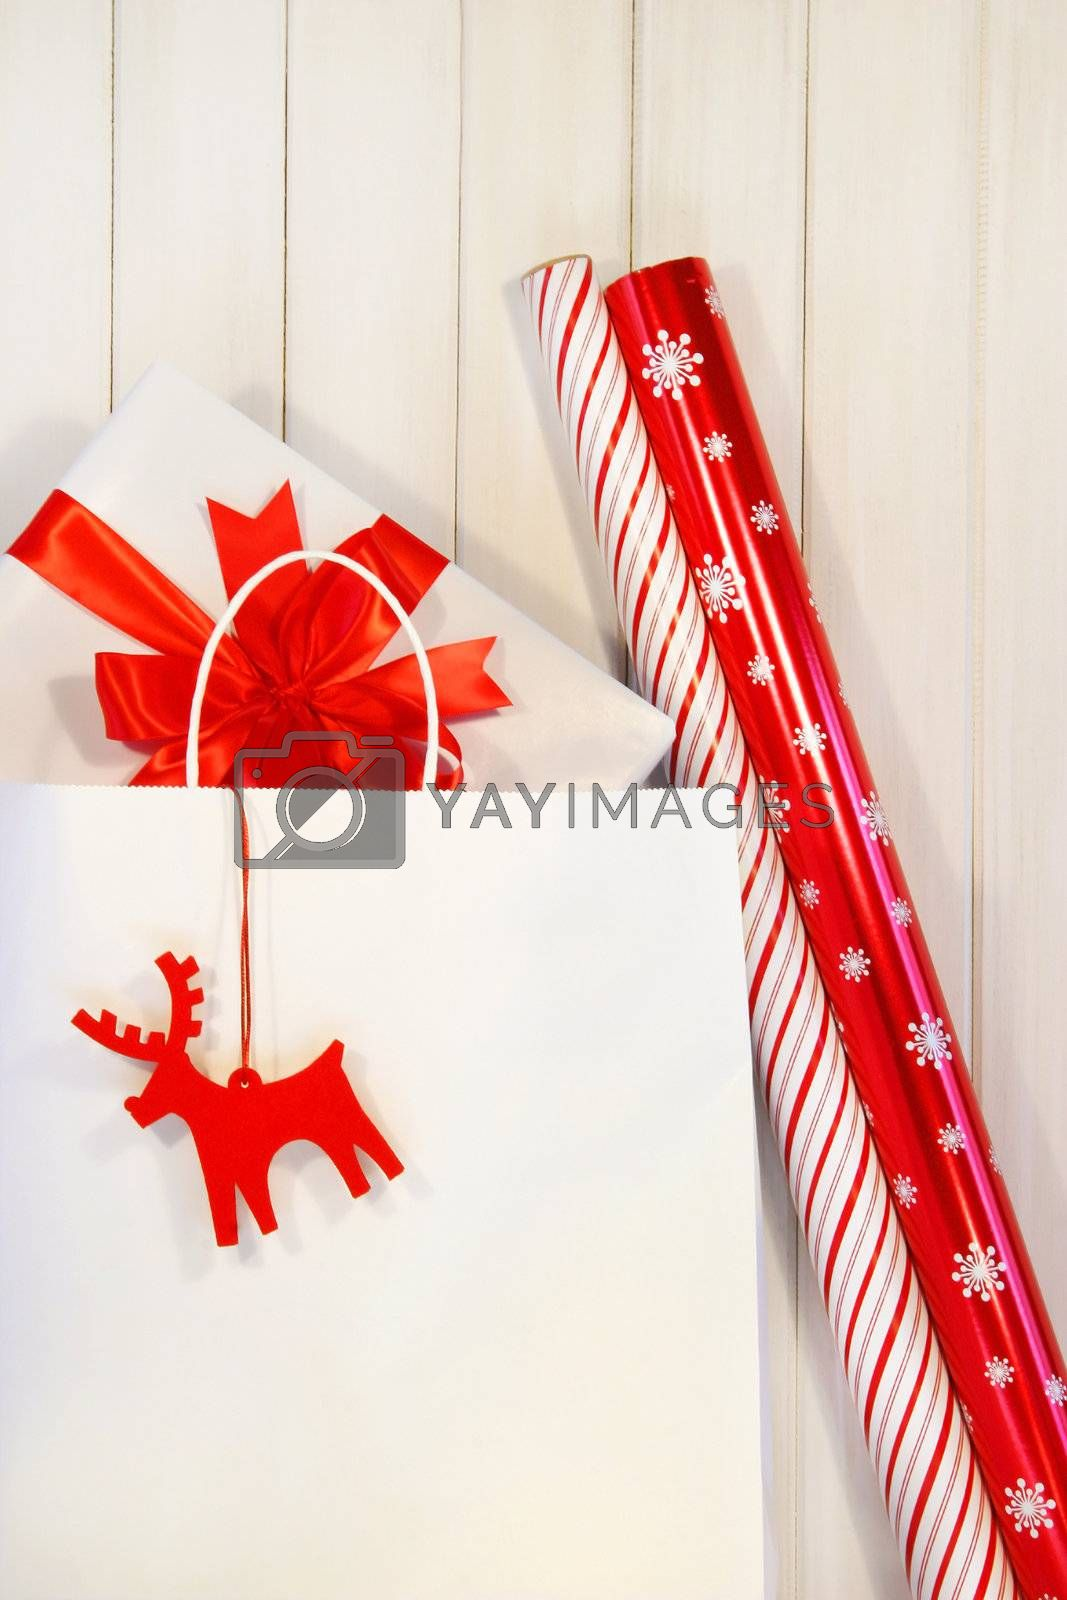 Gift with white shopping bag and wrapping paper